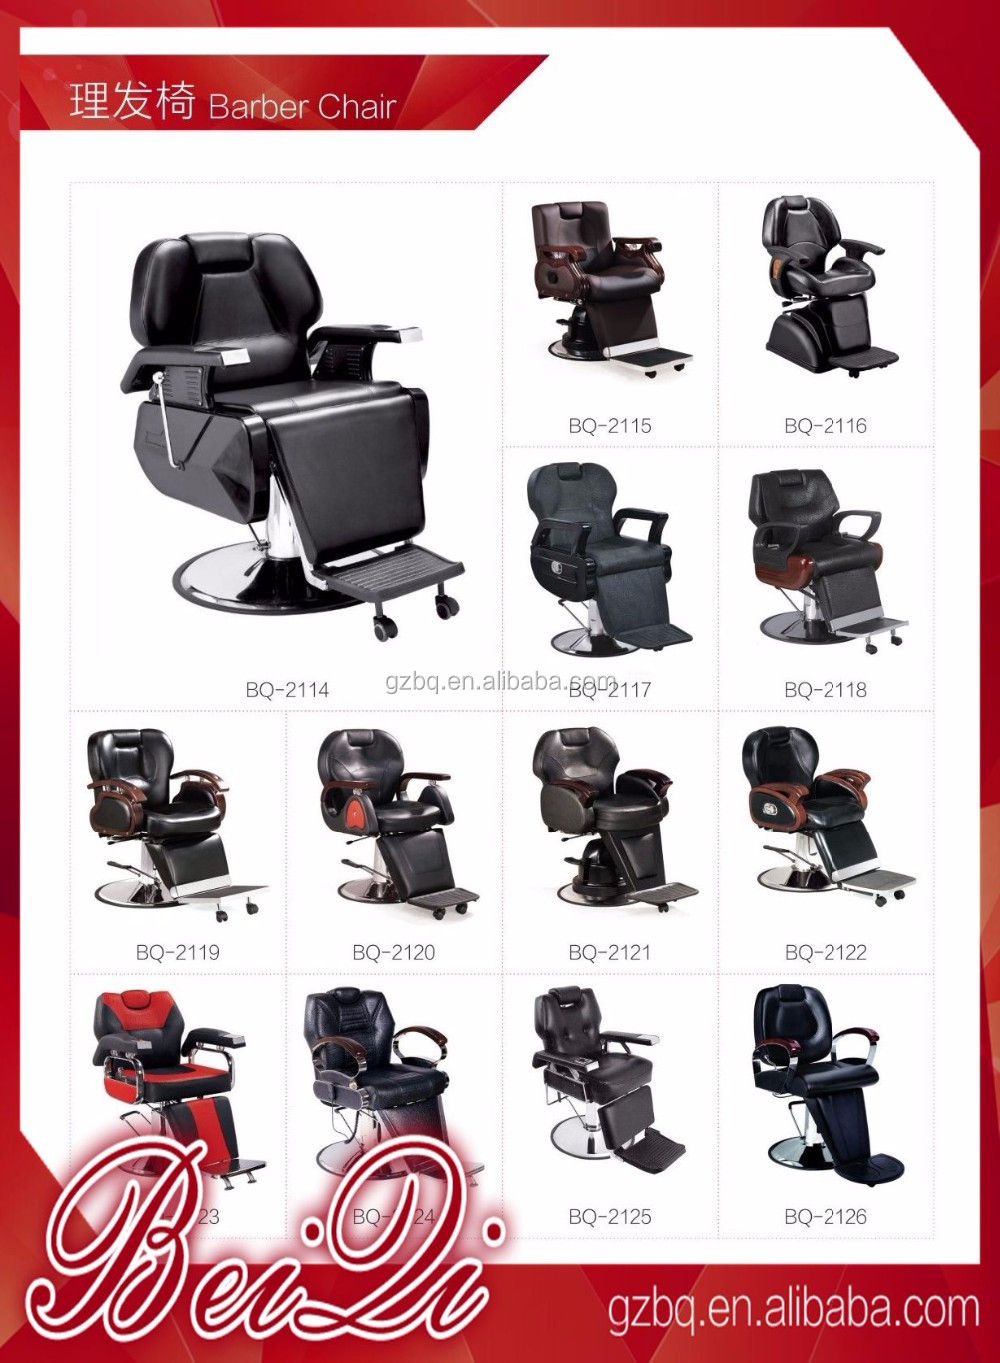 Barber chair for hair beauty salon equipment barber chairs for sale cheap buy barber chairs - Wholesale hair salon equipment ...